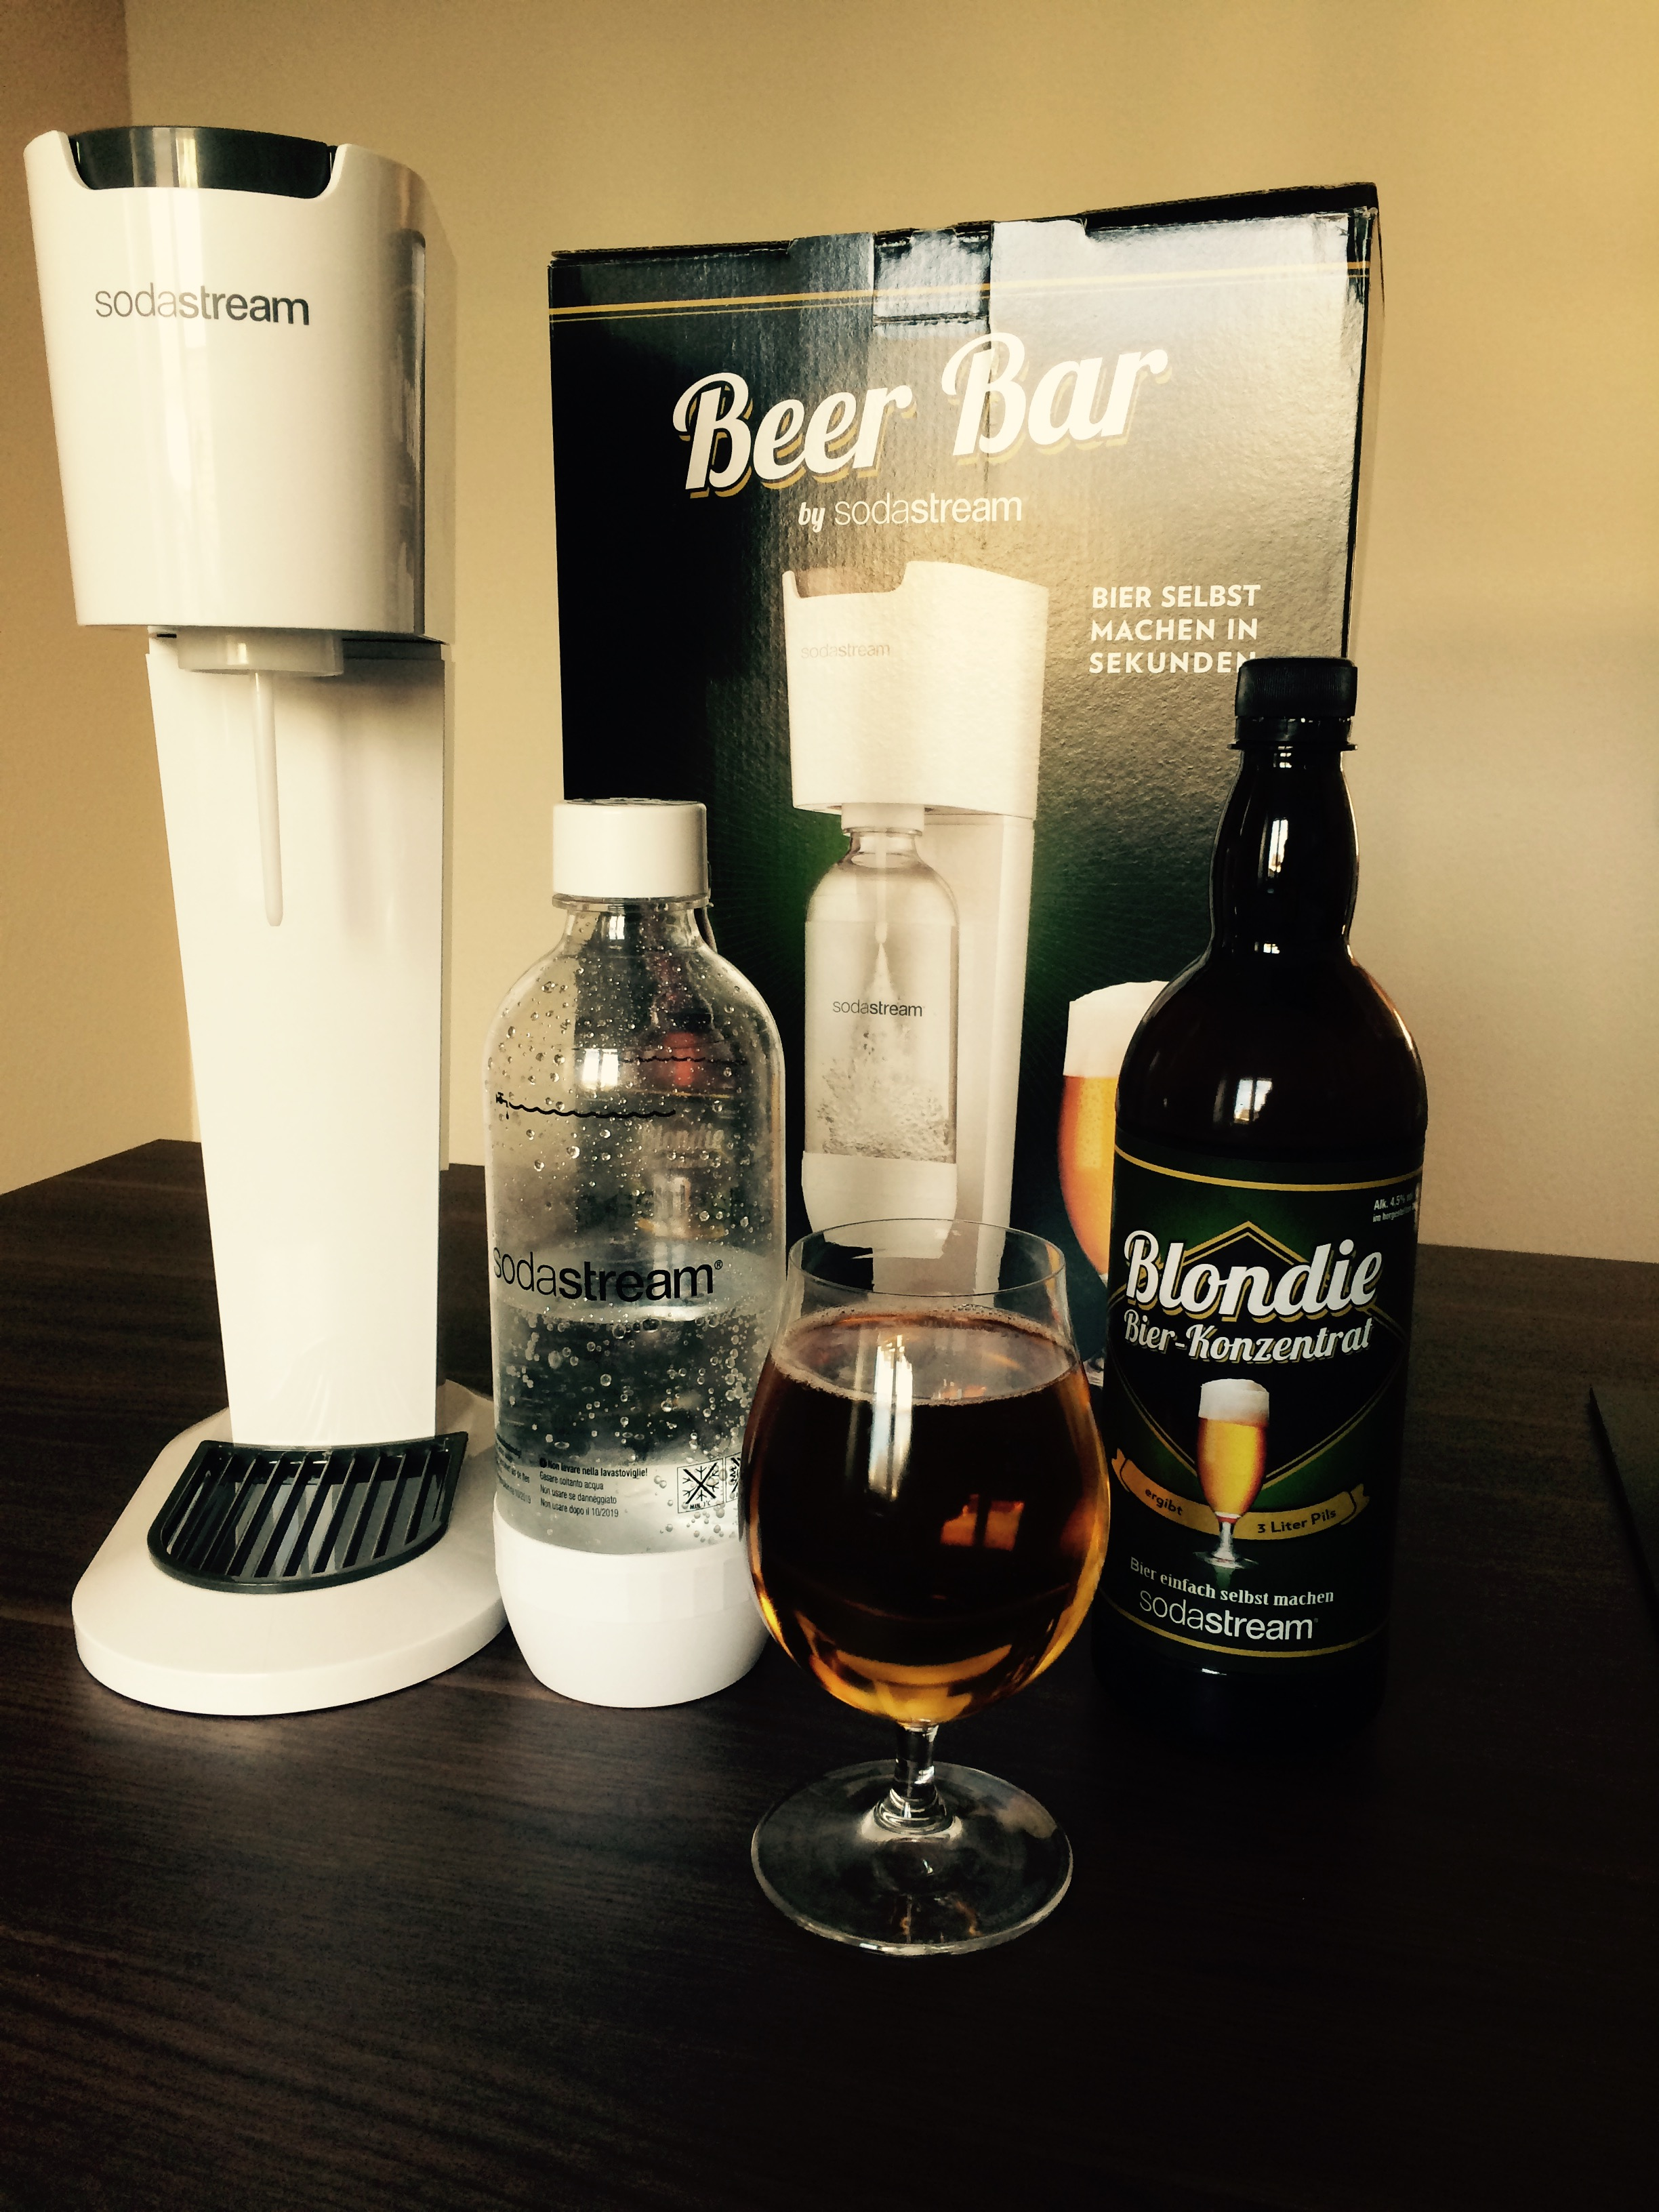 SodaStream Beer bar